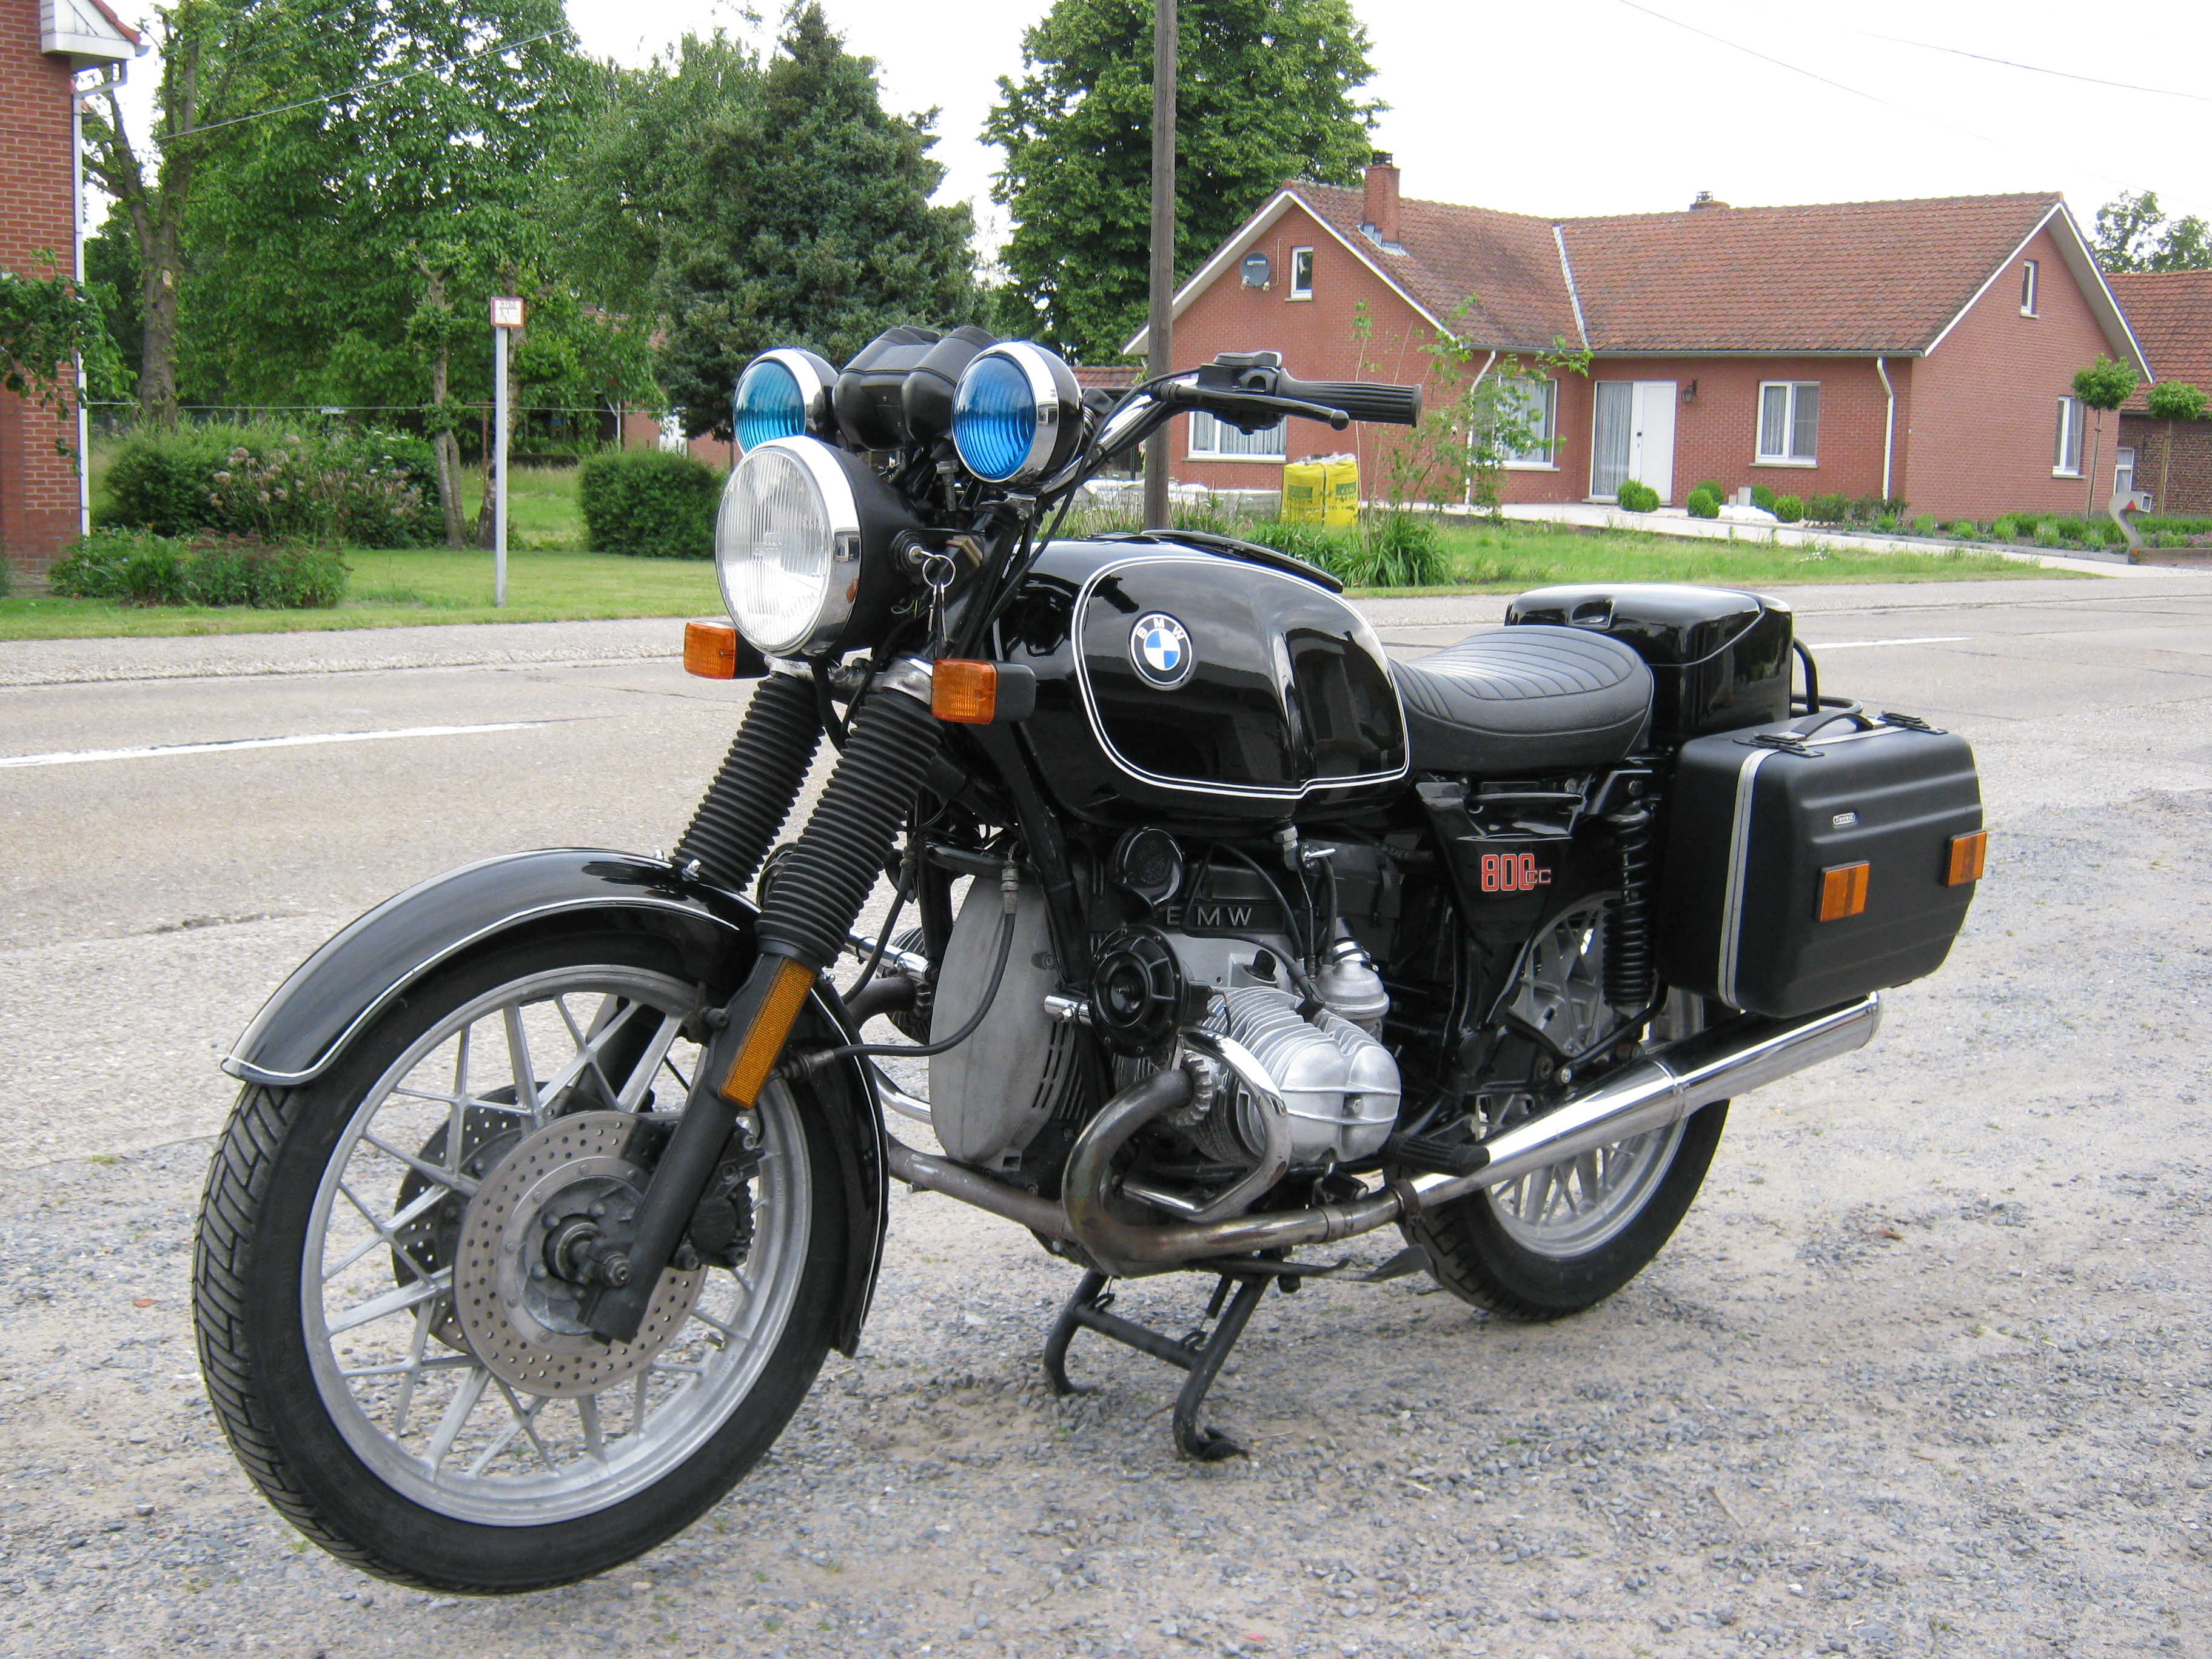 BMW R80RT 1984 images #165624